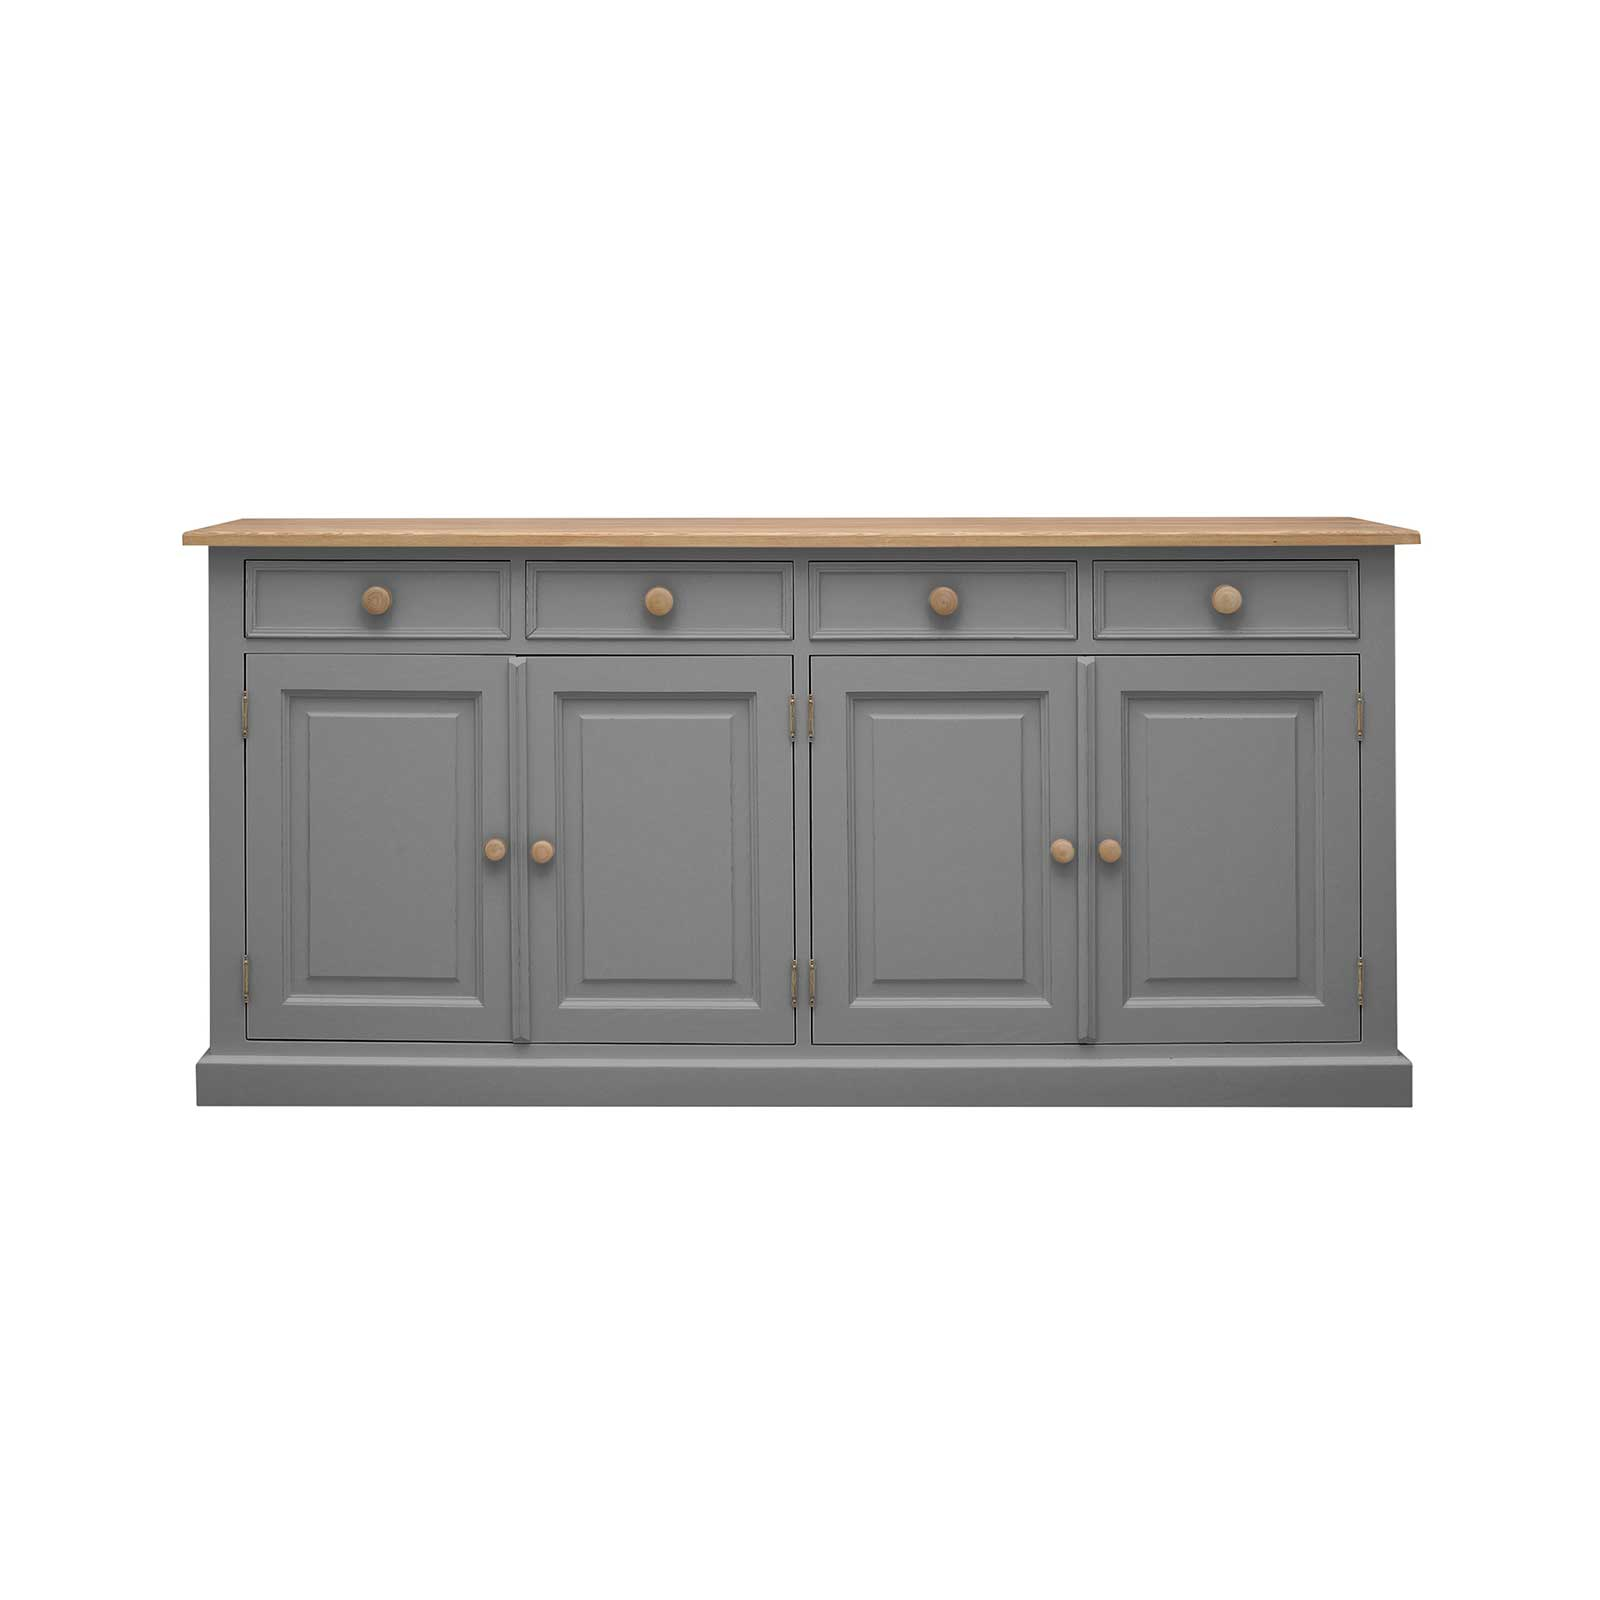 Soho Dark Gray Painted Frith Large 4 Door 4 Drawer Sideboard_1